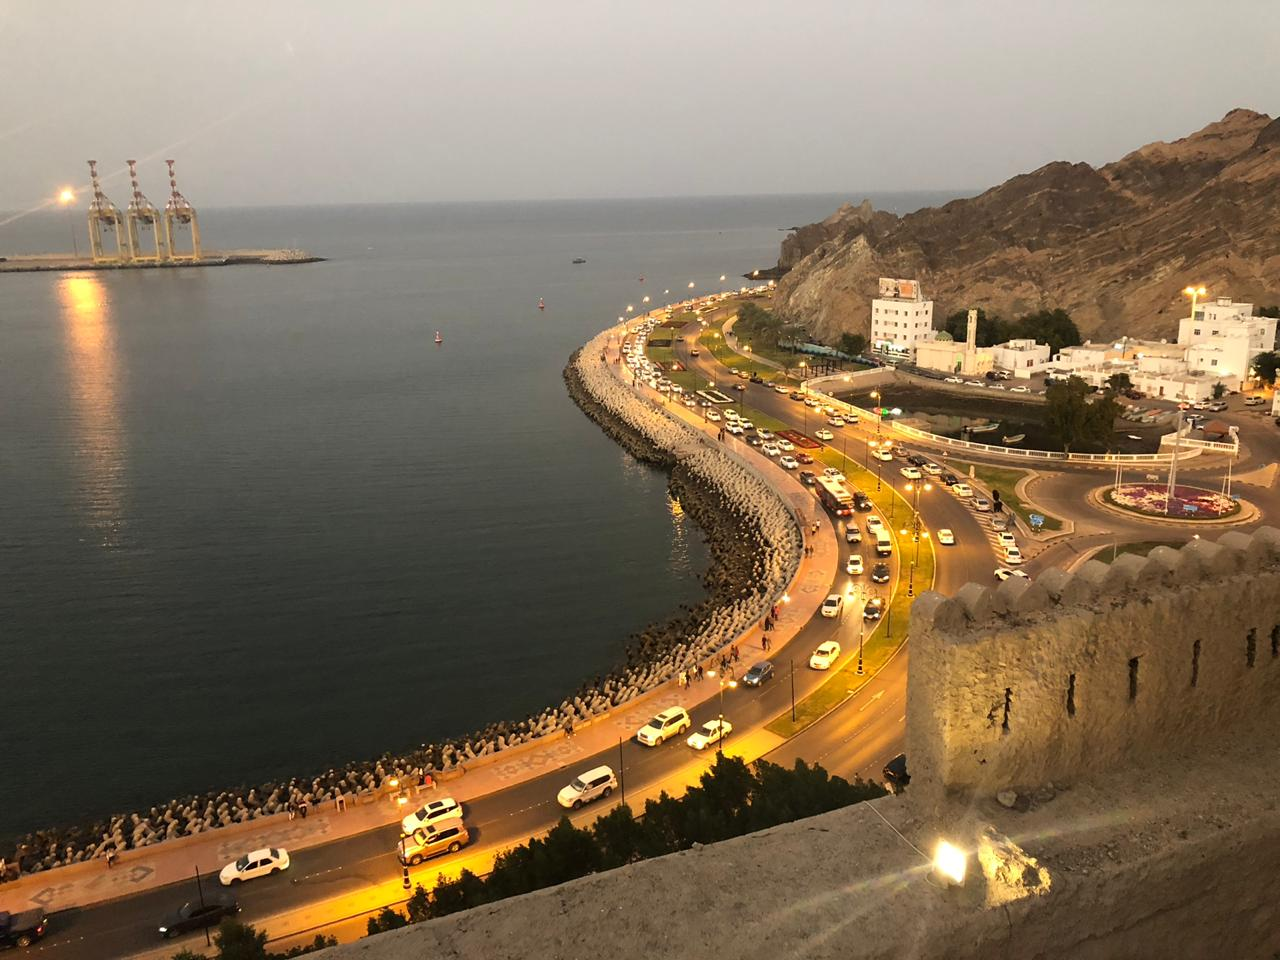 Hiking in Muttrah Muscat Oman